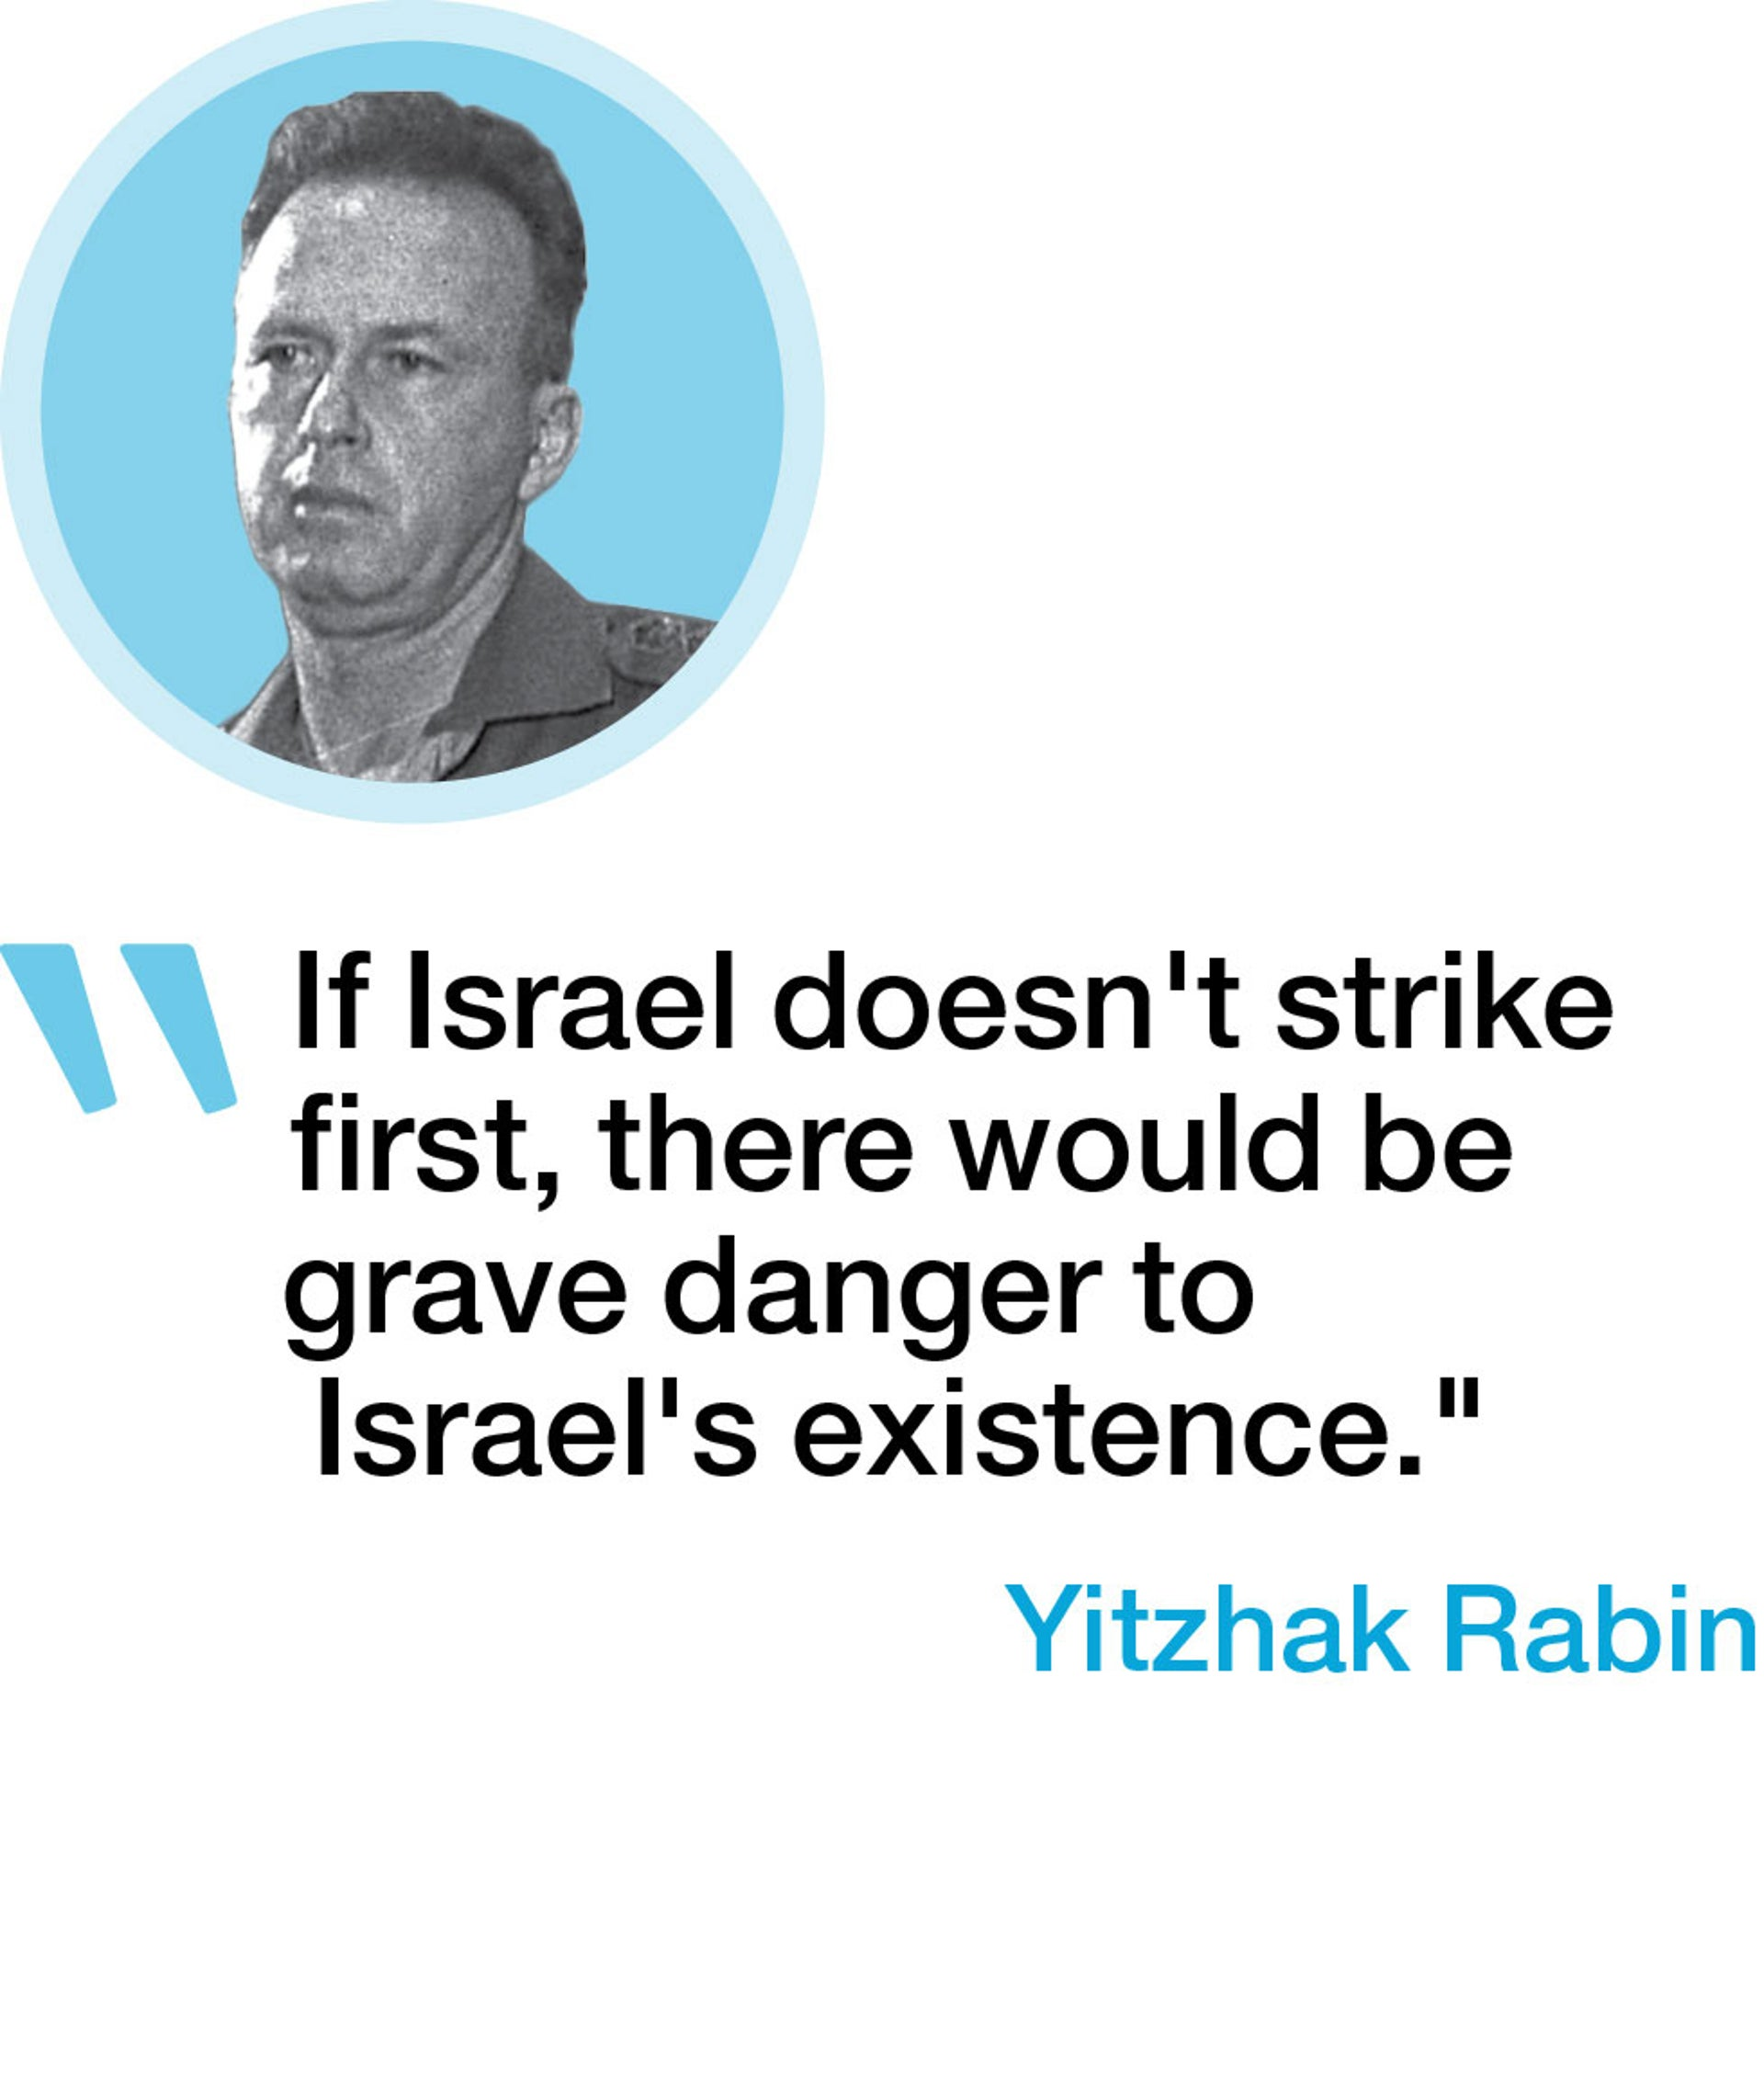 """If Israel doesn't strike first, there would be grave danger to Israel's existence."" - Yitzhak Rabin"